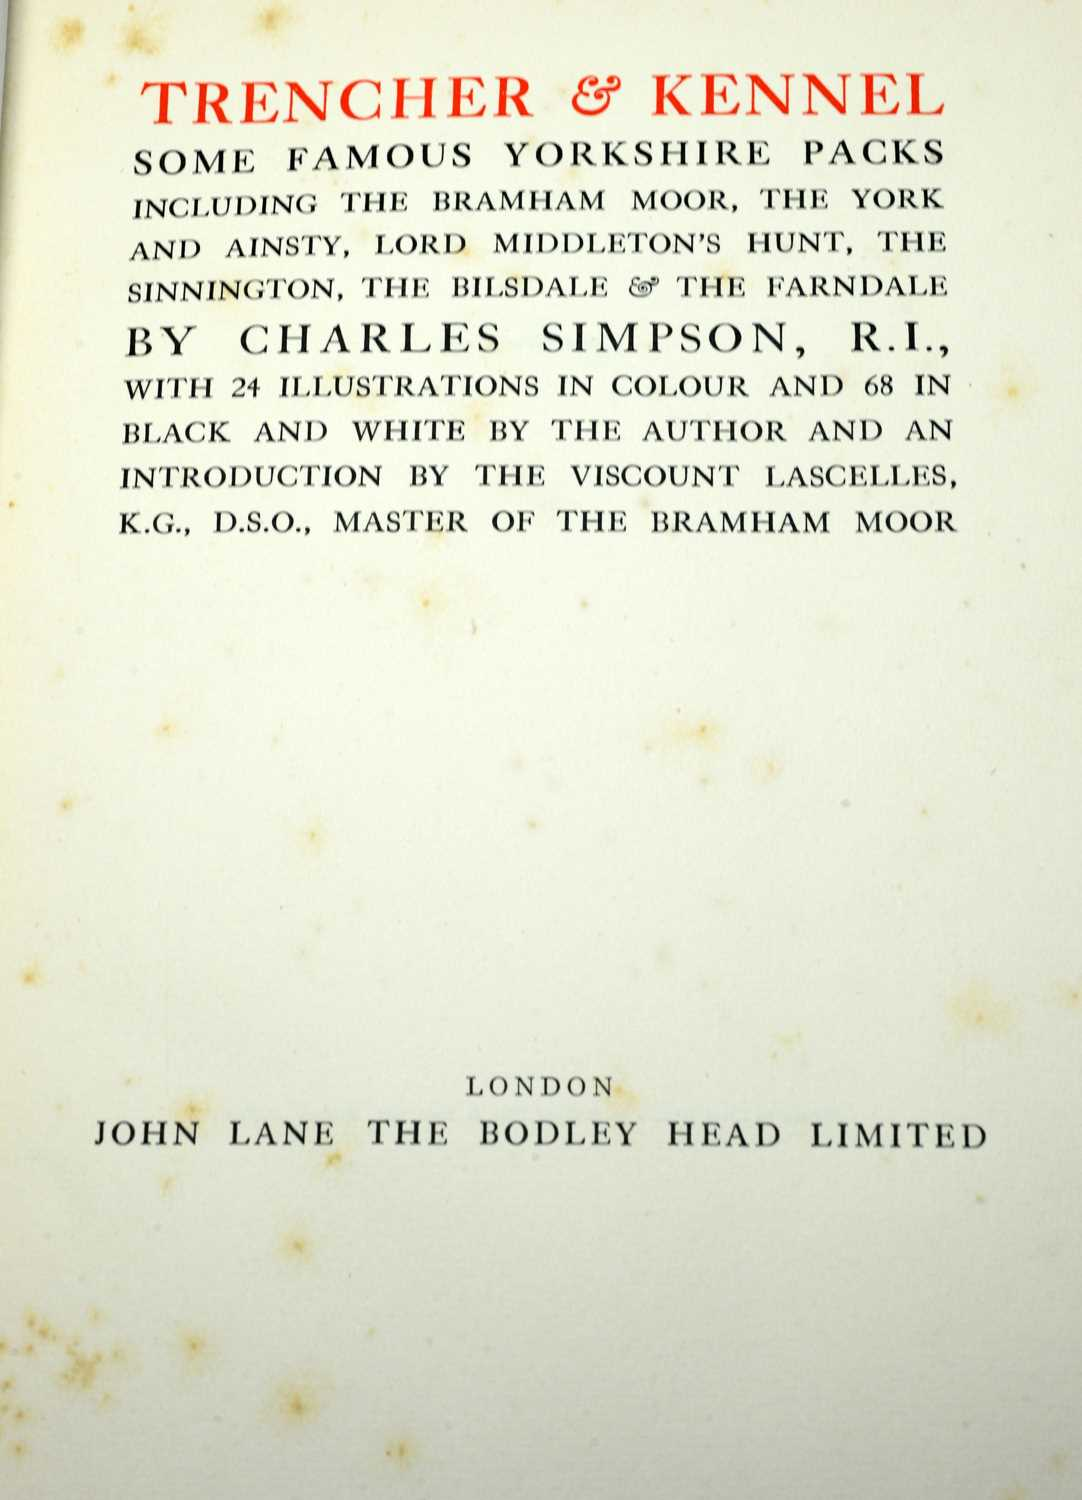 Books on Hunting - Image 2 of 7